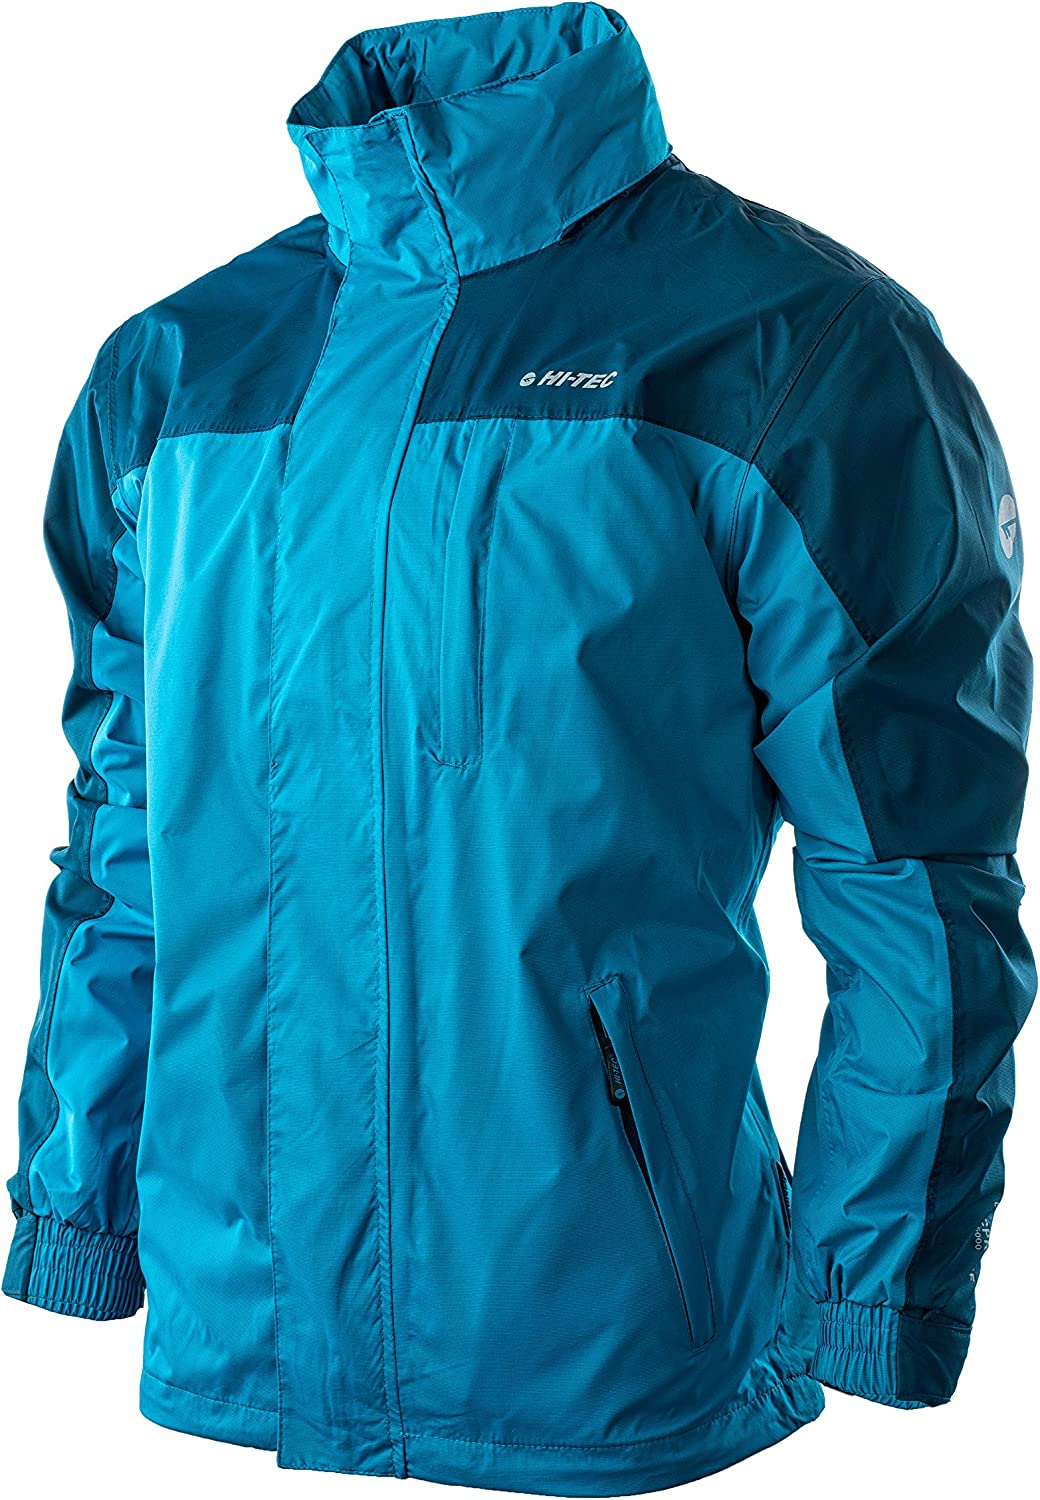 HITEC 5901979155713 Jacket DIRCE Diva bluee Poseidon XL 92800074979